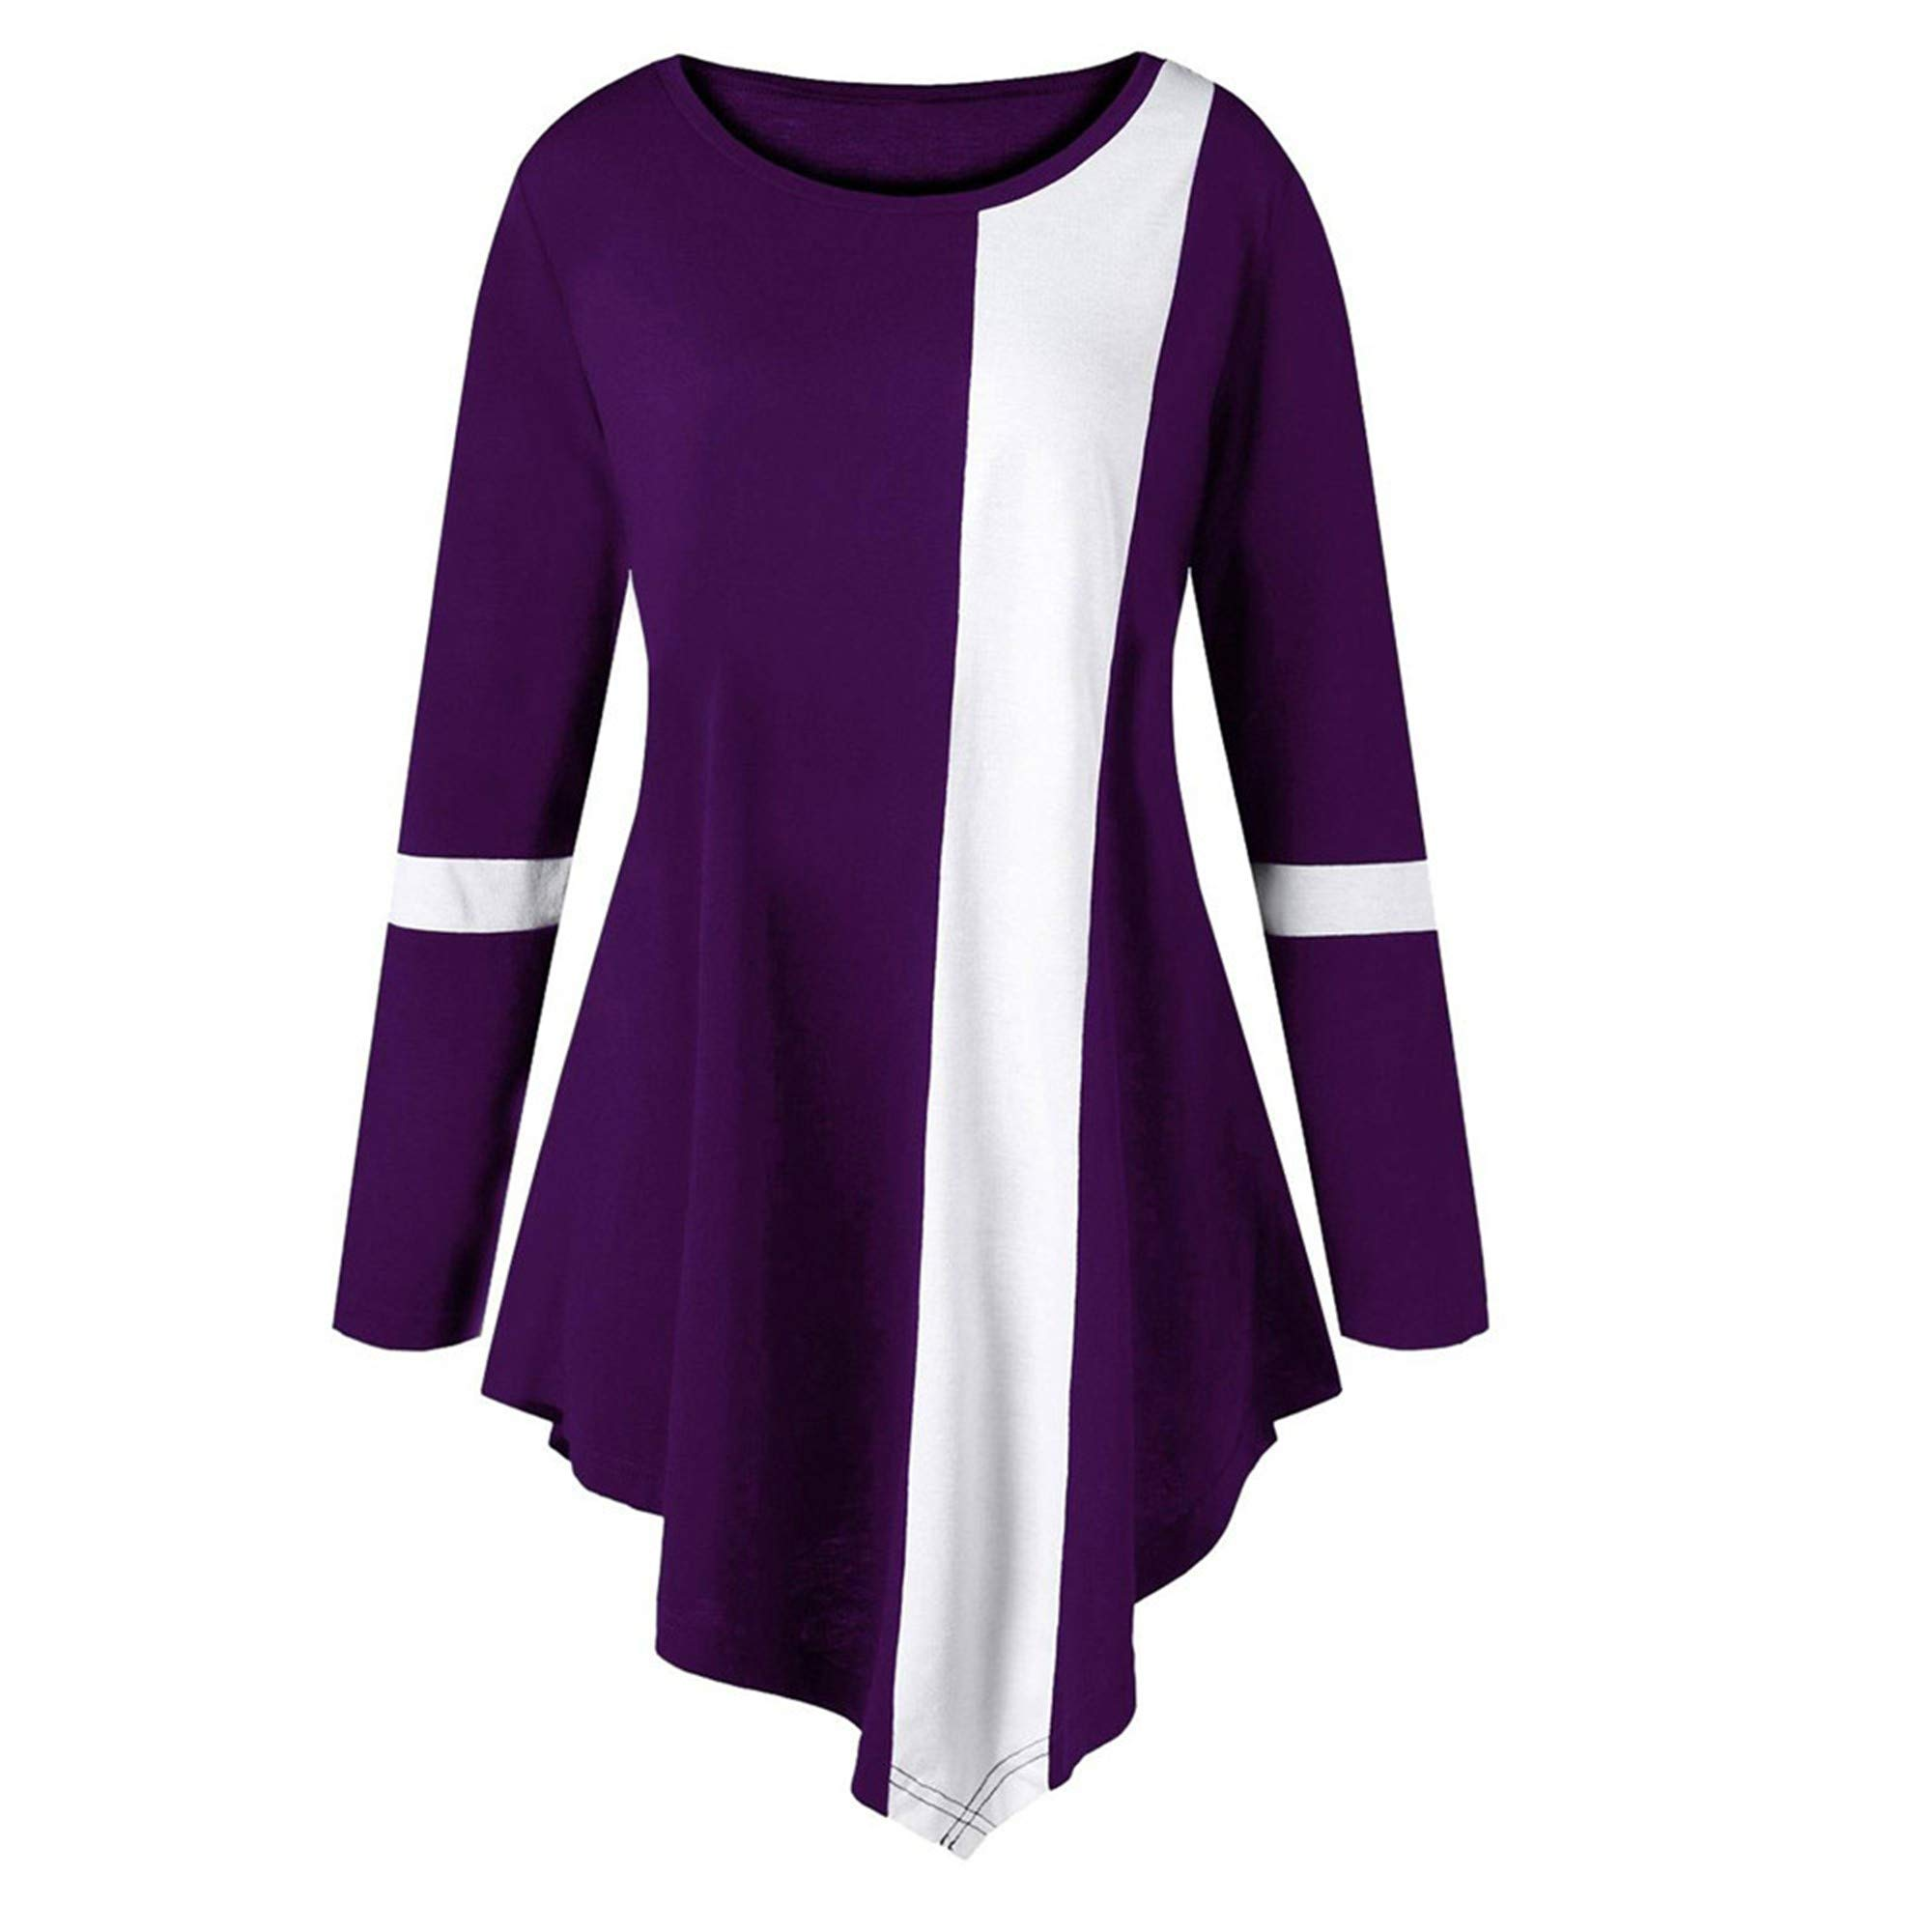 SMALLE ◕‿◕ Women's Long Sleeves Scoop Neck Dressy Tunic Shirts Two Tone Color Block Tops Asymmetric Pullover